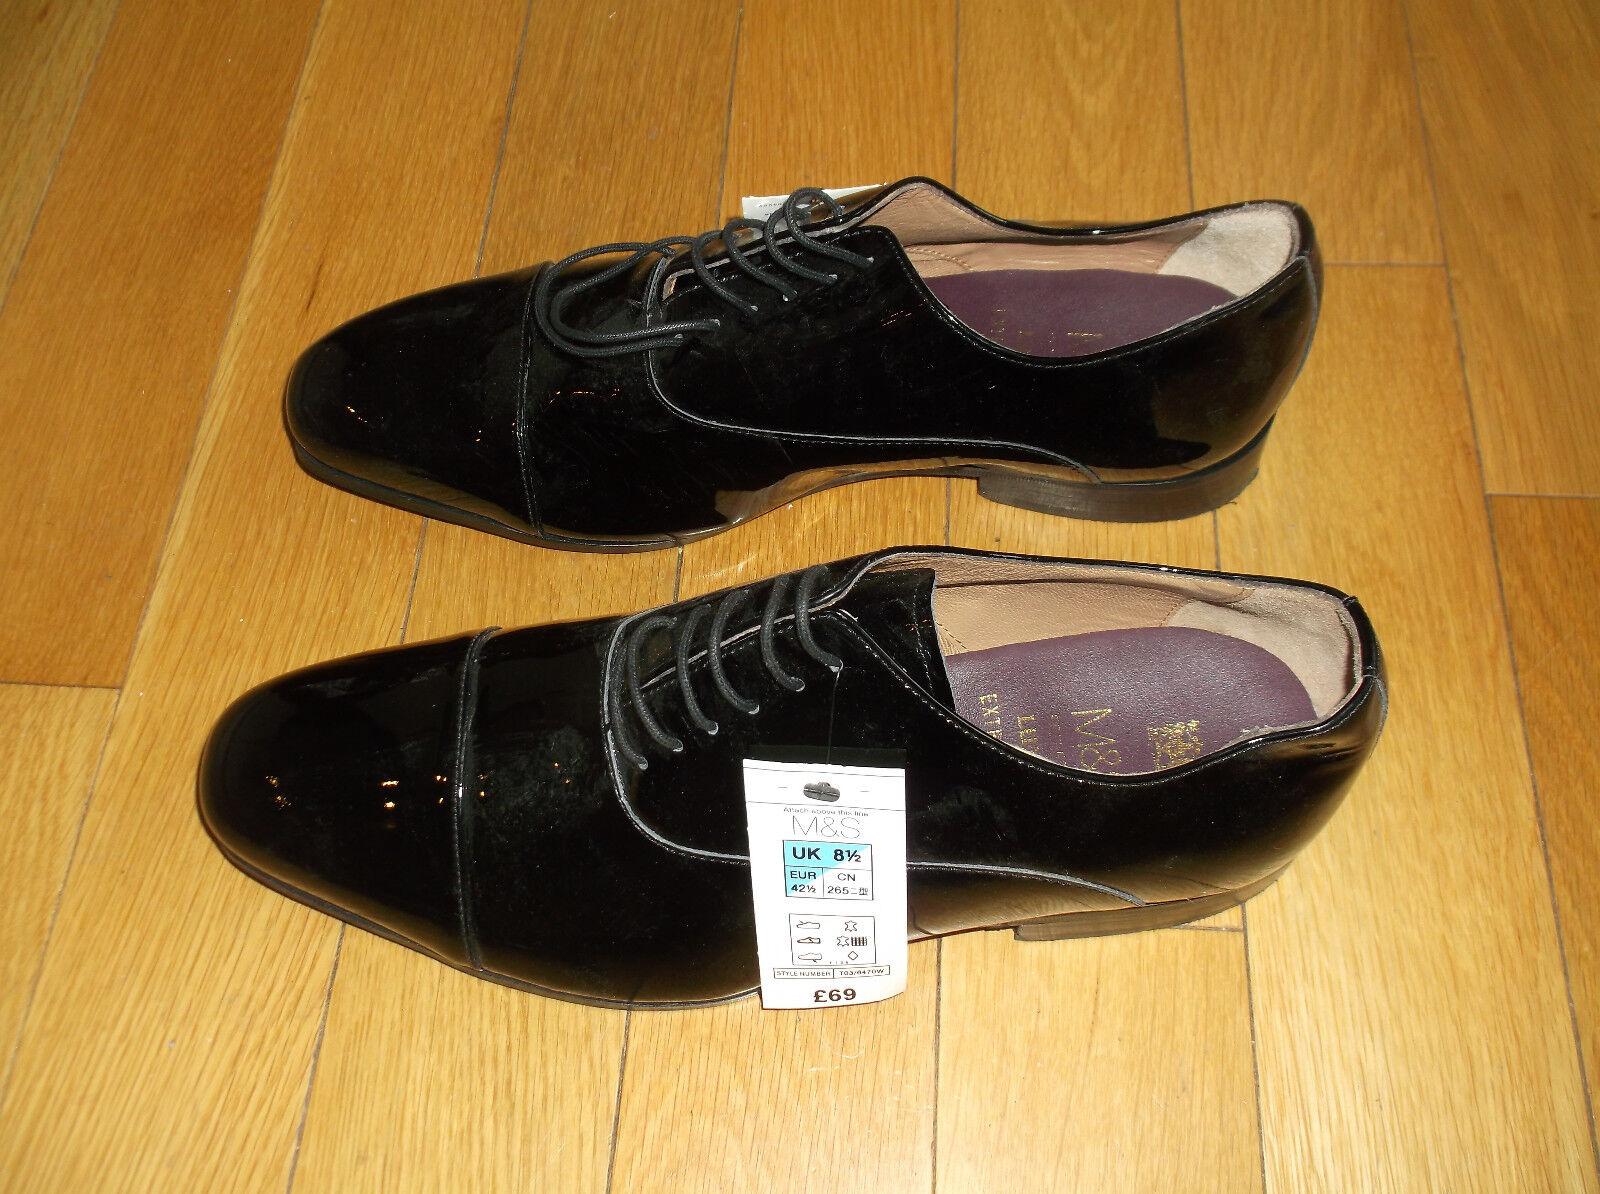 MARKS AND SPENCER M&S COLLECTION LUXURY 'EXTRA WIDE FIT' SHOES, UK 8.5, EU 42.5